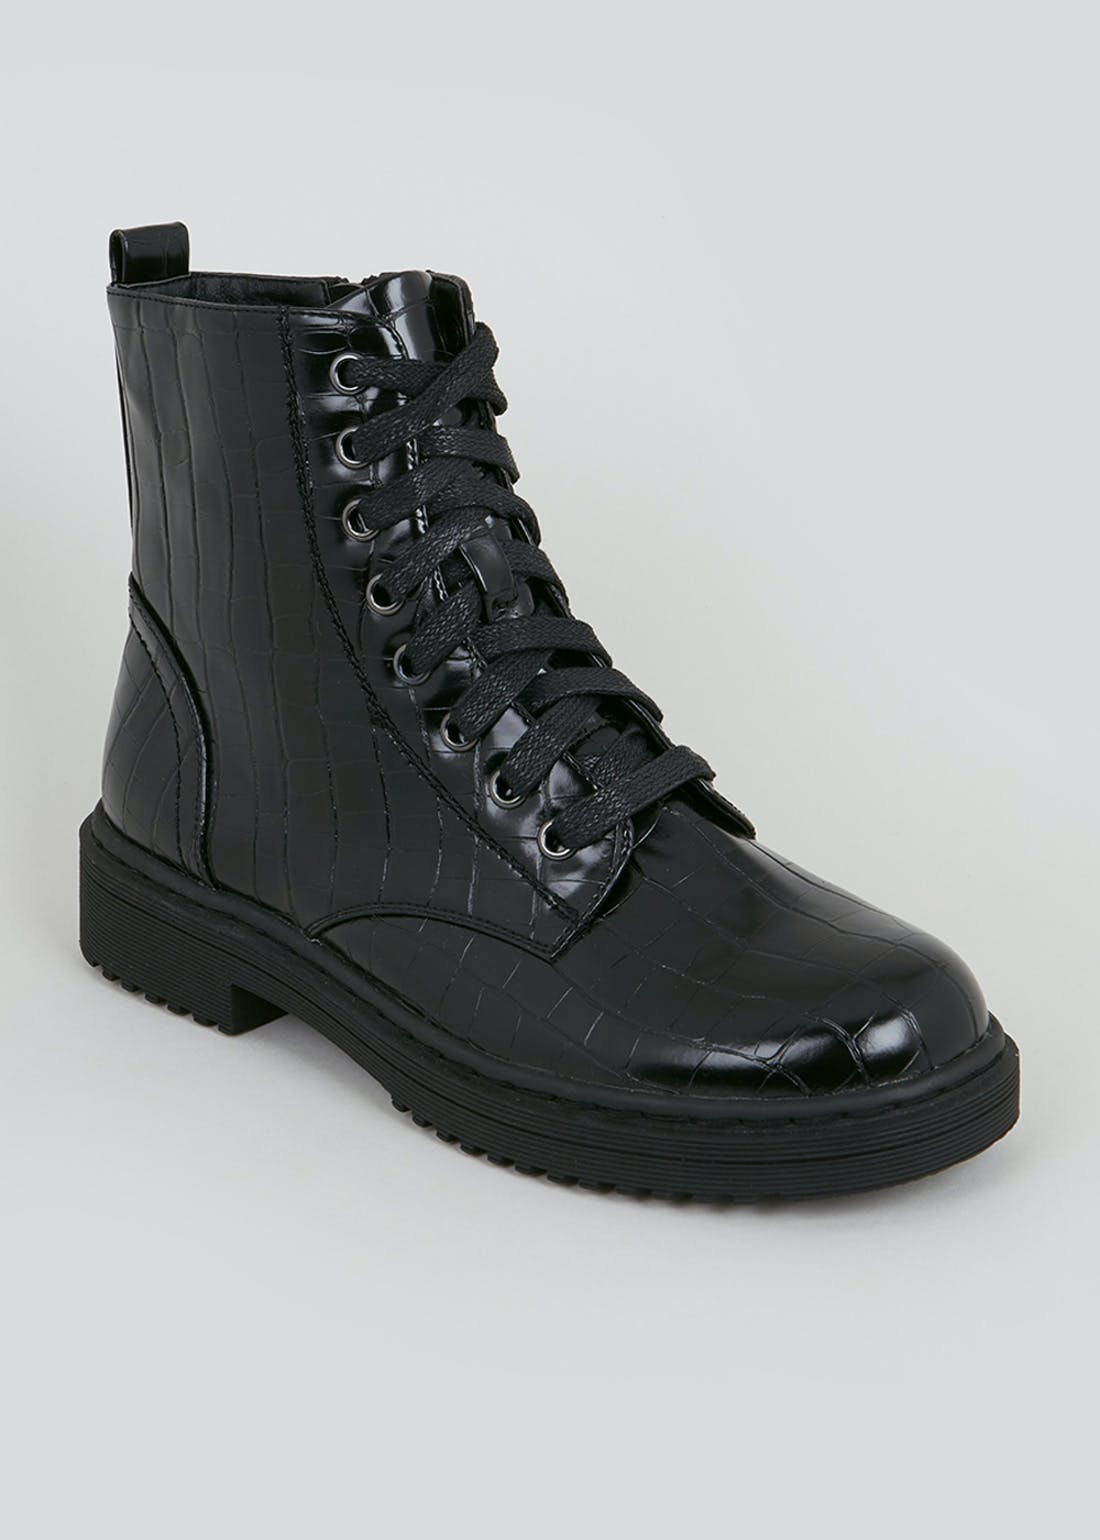 Black Patent Mock Croc Worker Boots